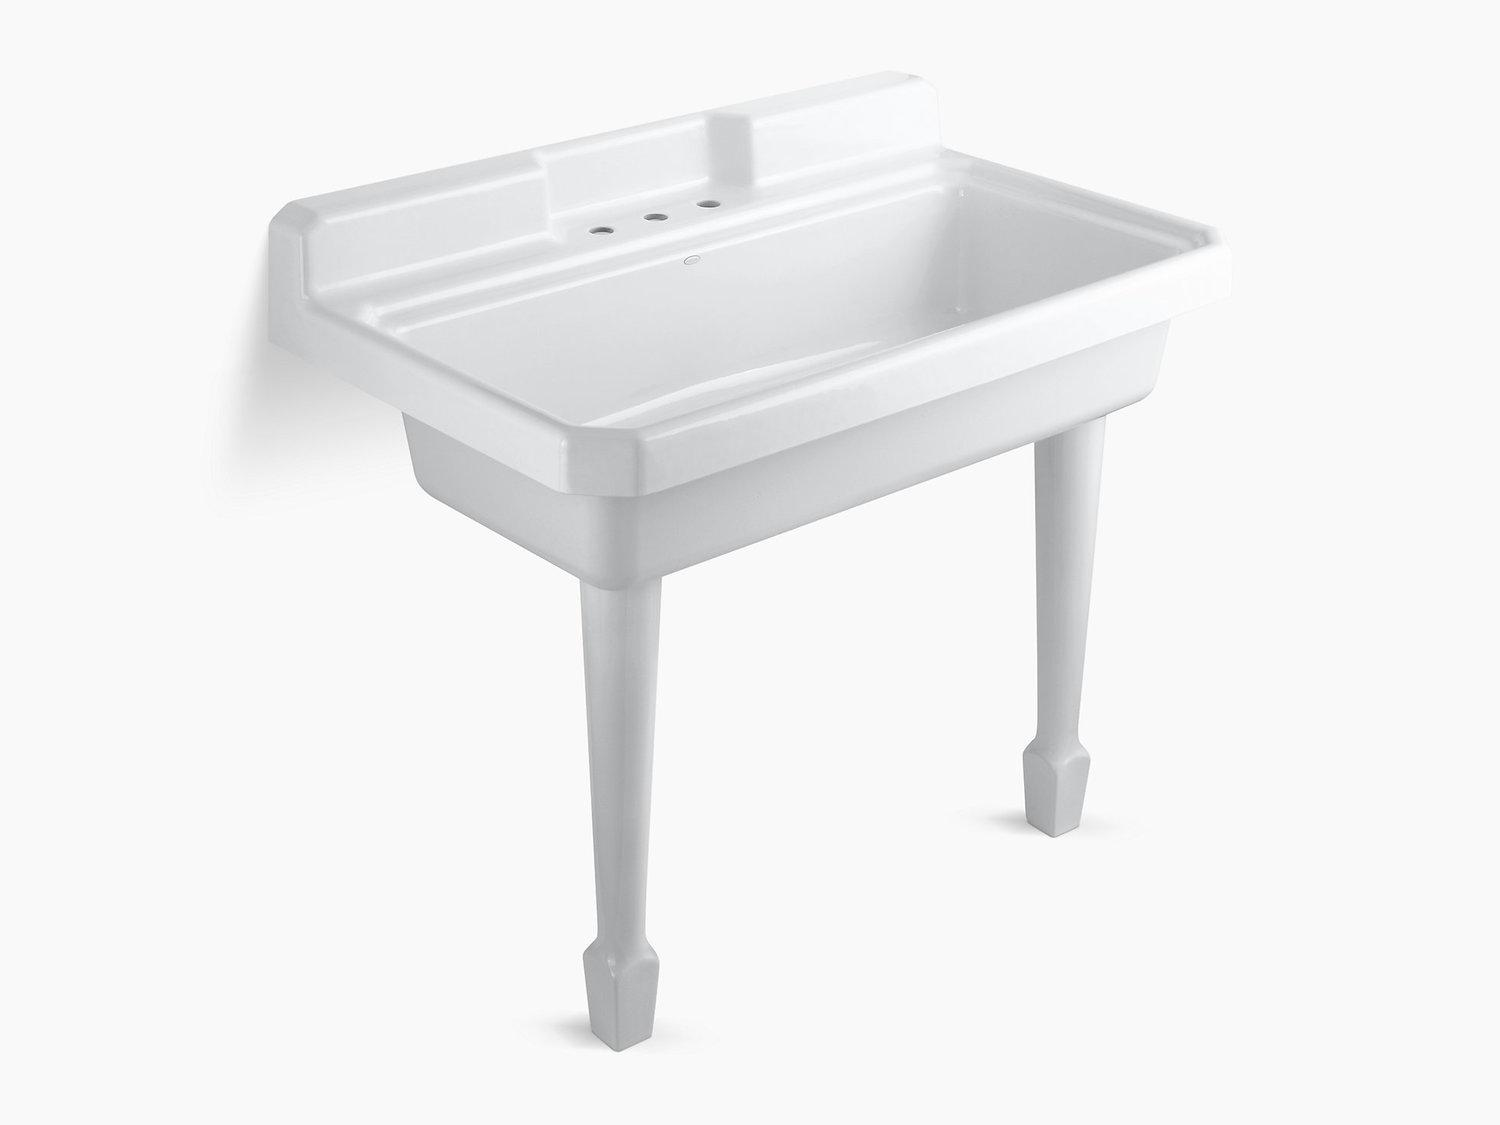 """White 48"""" X 28"""" X 41-11/16"""" Top-mount or Wall-mount Utility Sink With 3 Faucet Holes On Center Deck"""